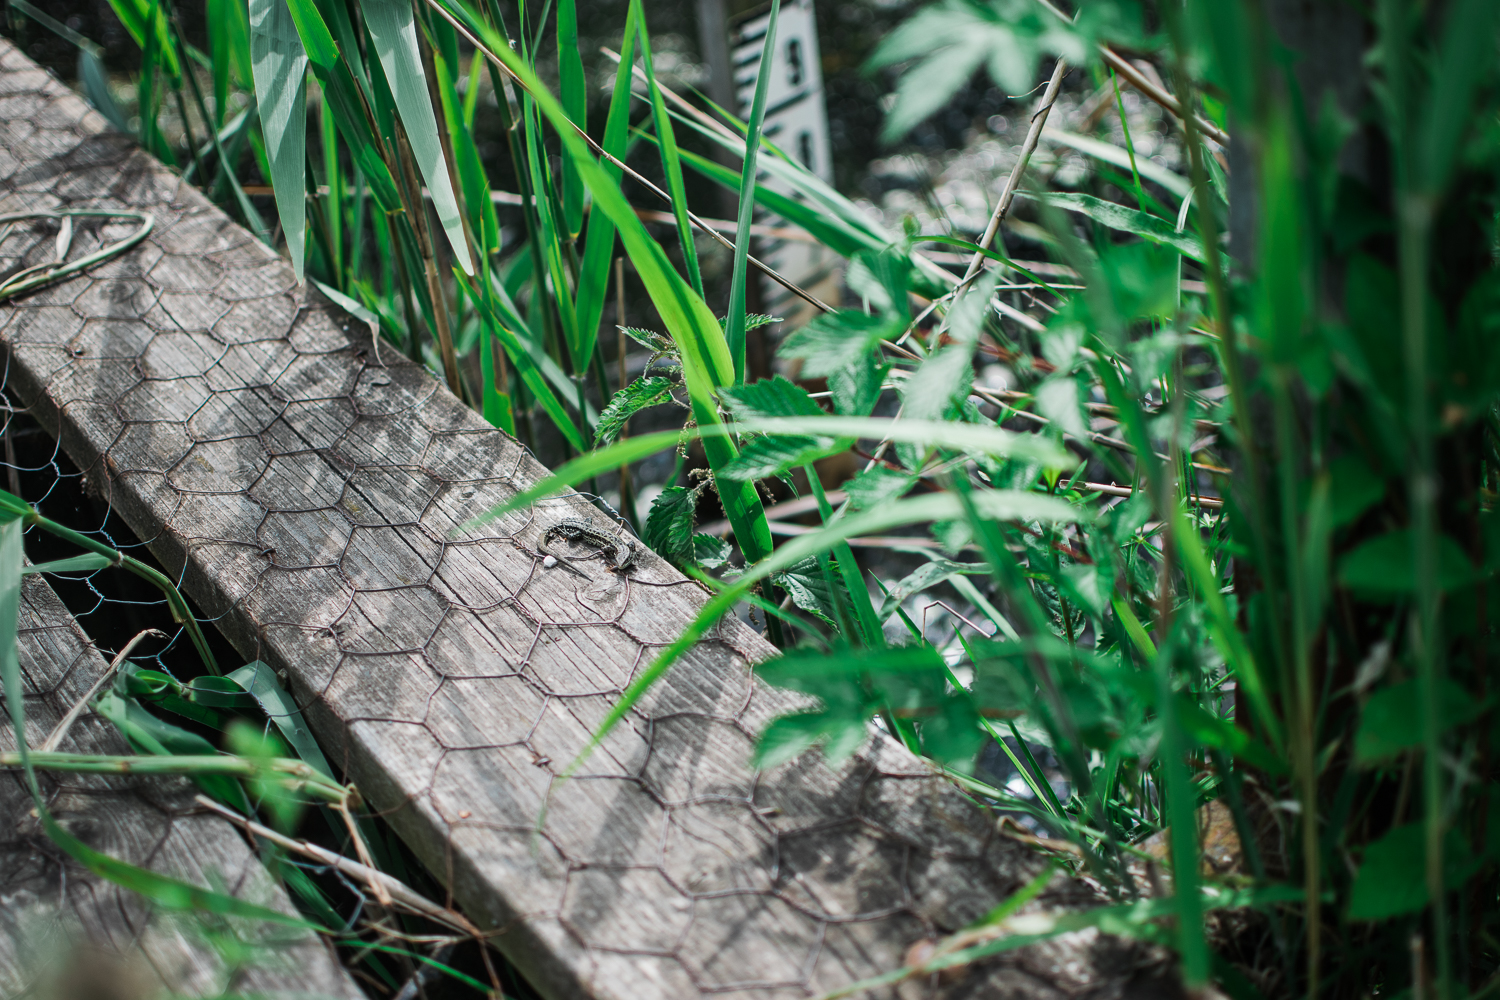 Photograph of a Common lizard taken by a child at Woodwalton Fen